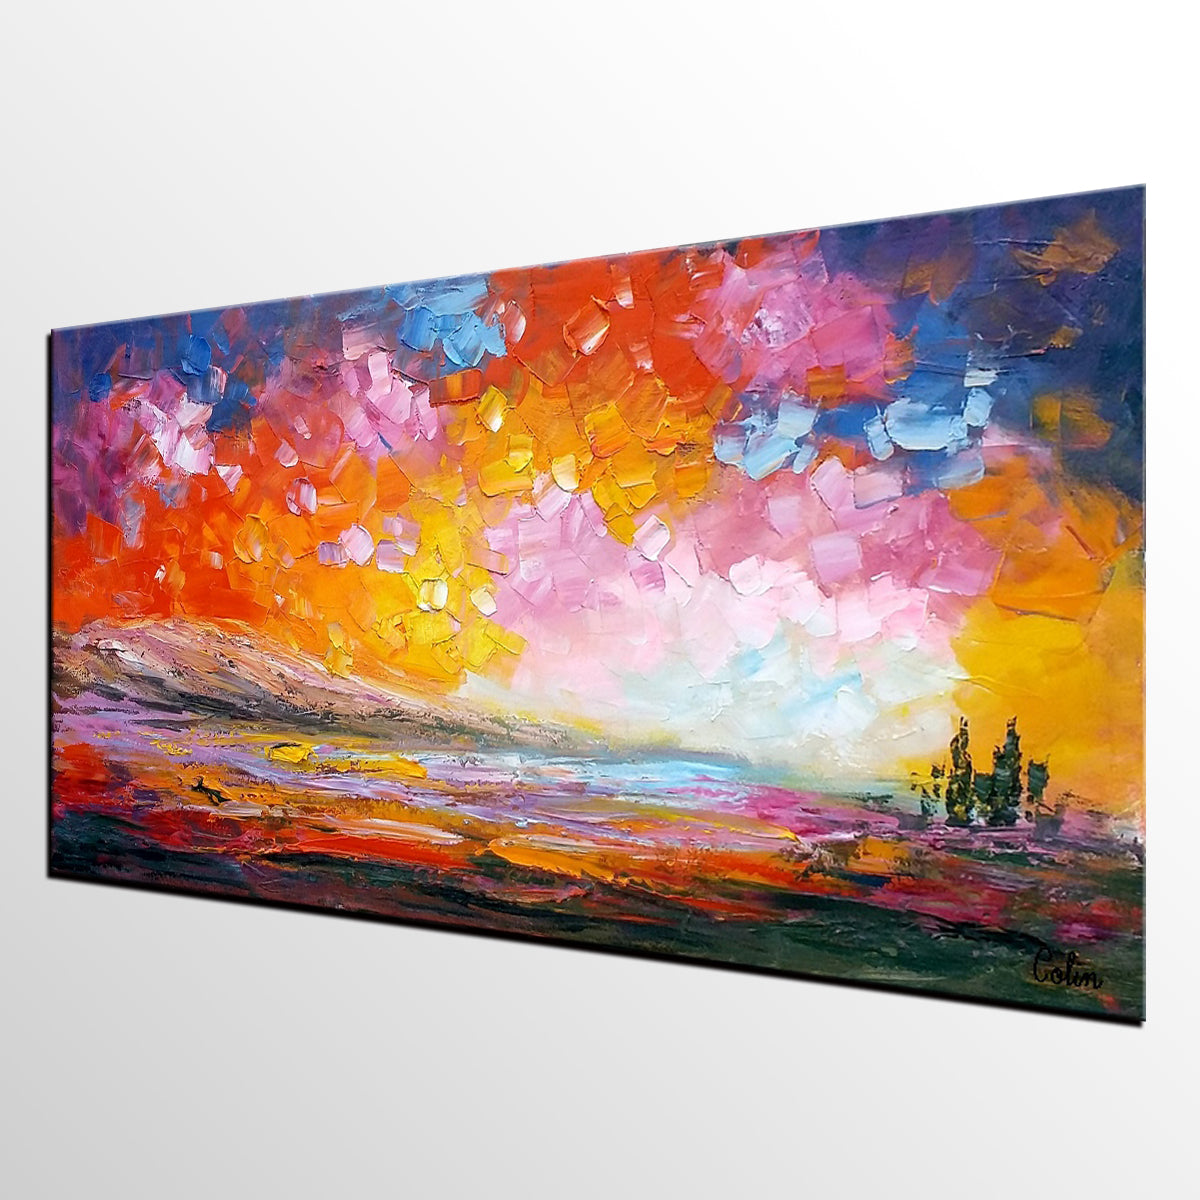 Modern Painting, Abstract Landscape Art, Original Oil Painting, Abstract Painting, Large Art, Canvas Art, Wall Art, Canvas Painting, Painting for Sale